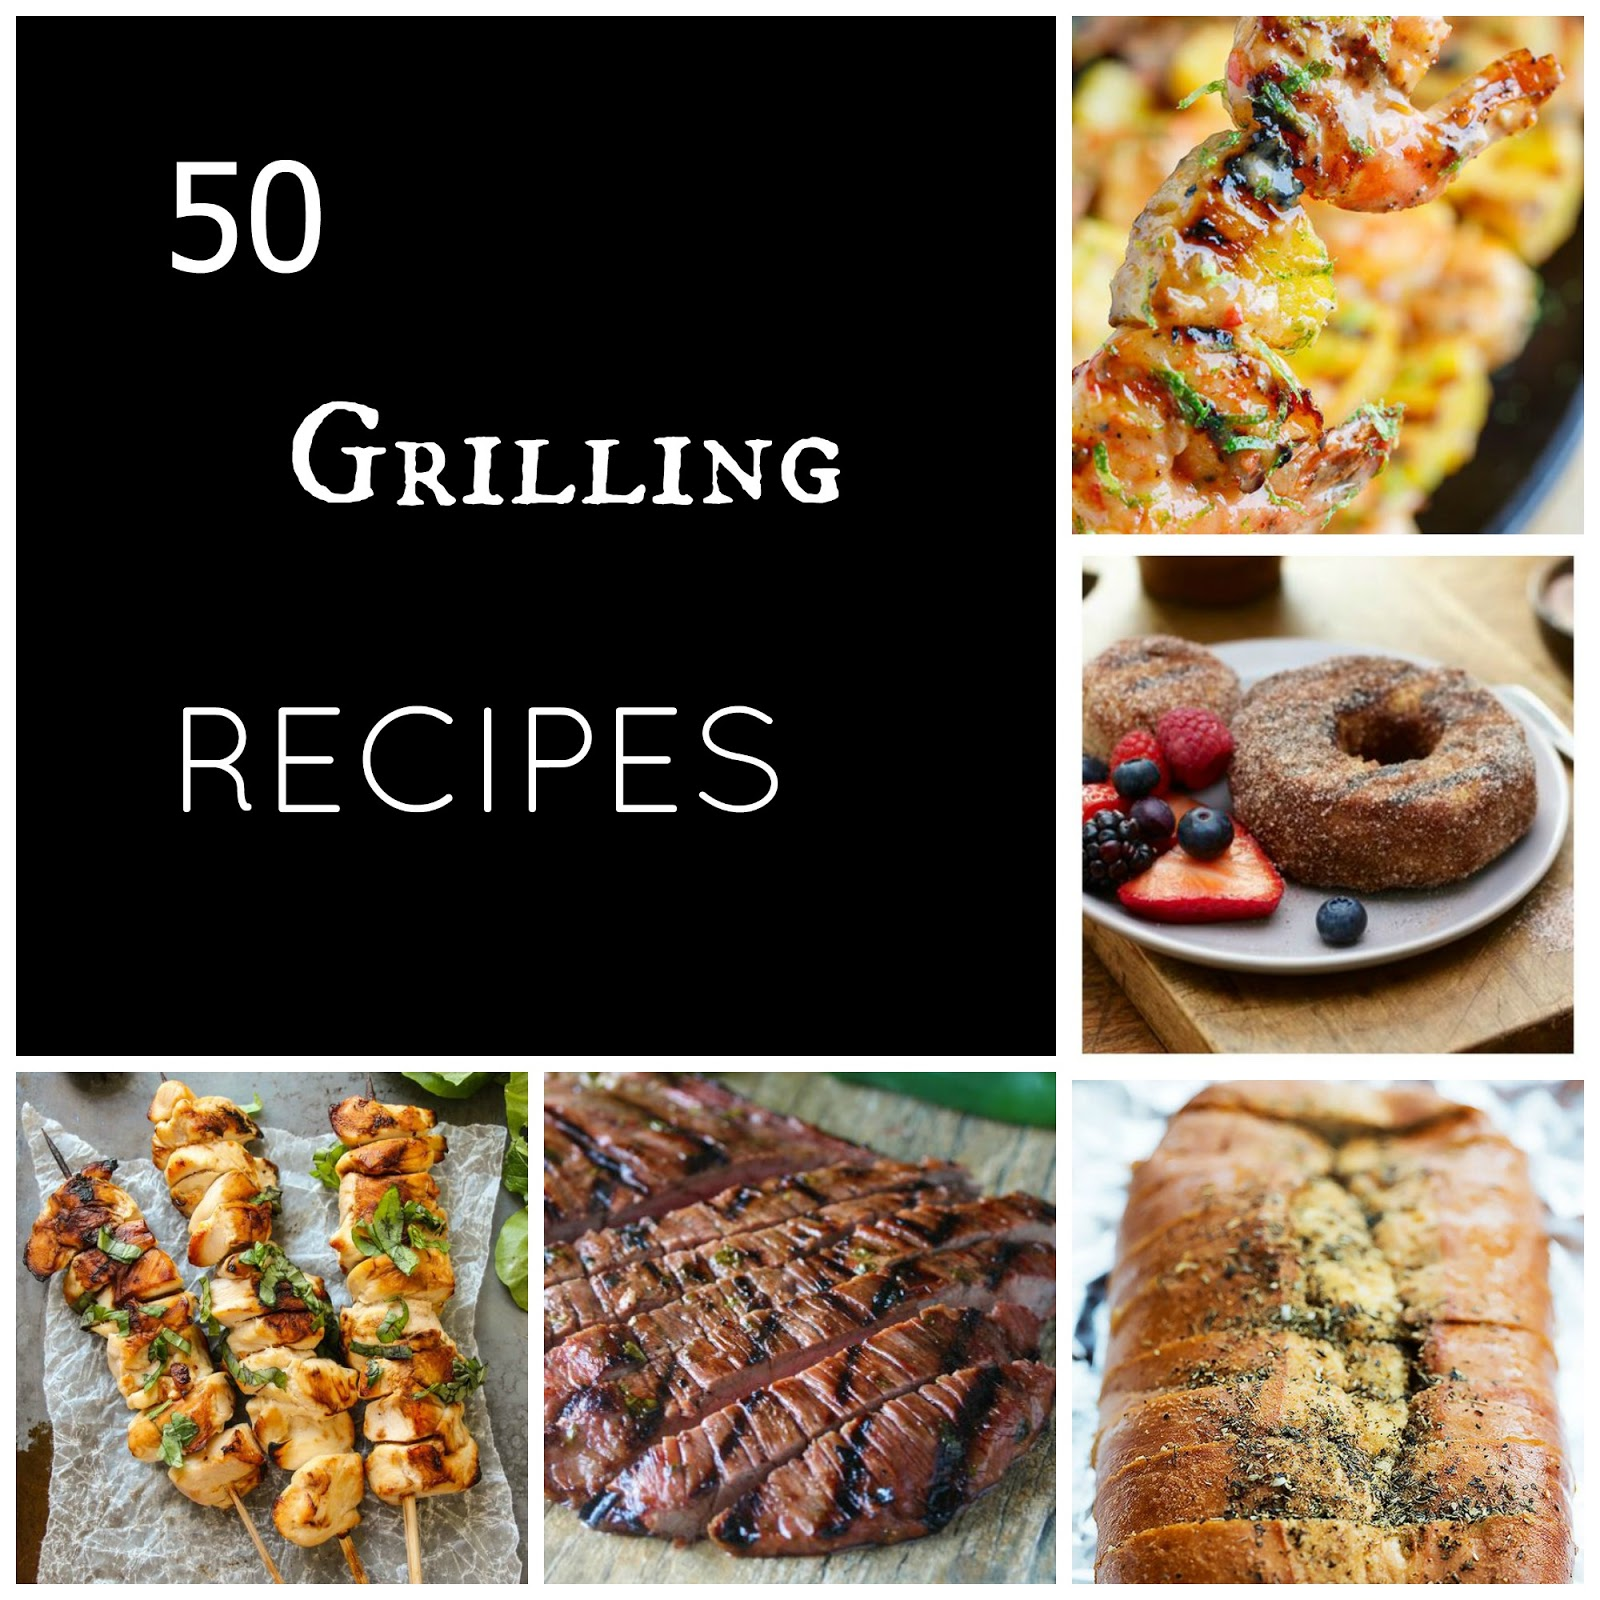 Try these creative and delicious grilling recipes to impress friends this grilling season!